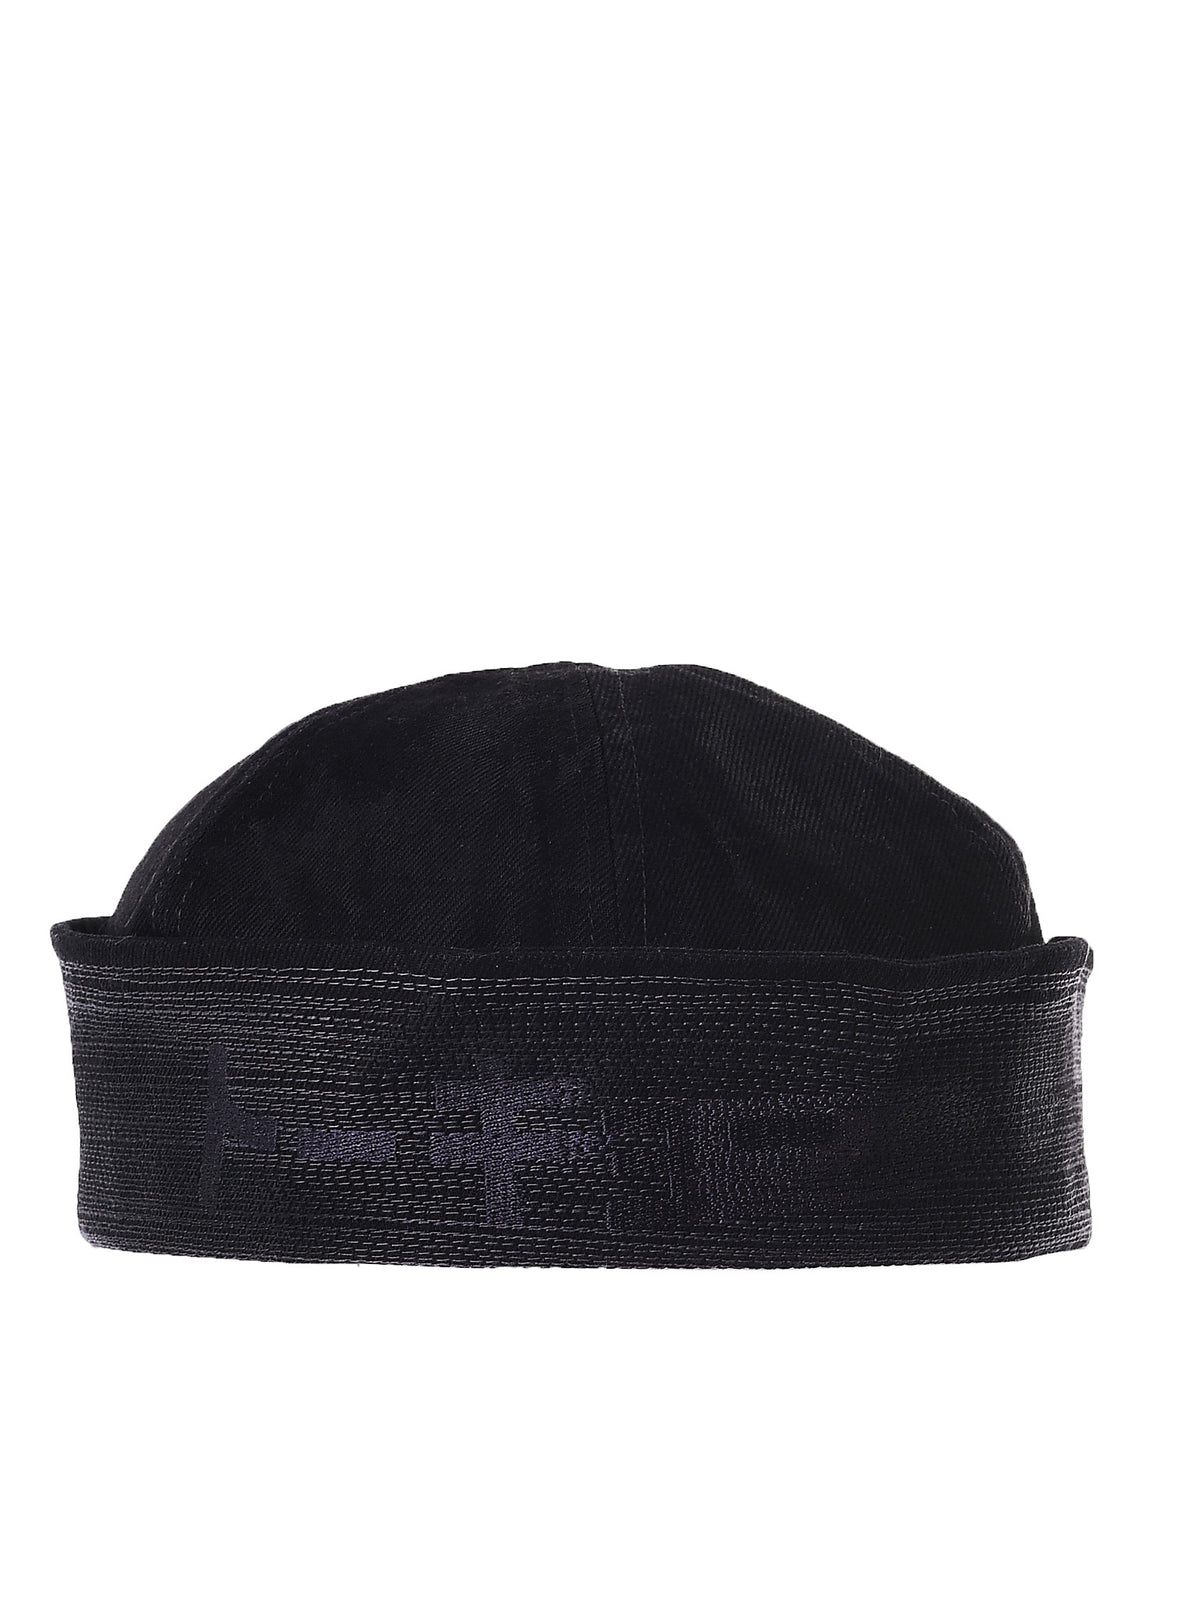 Graphic Sailor's Hat (JUN01612-BLACK)